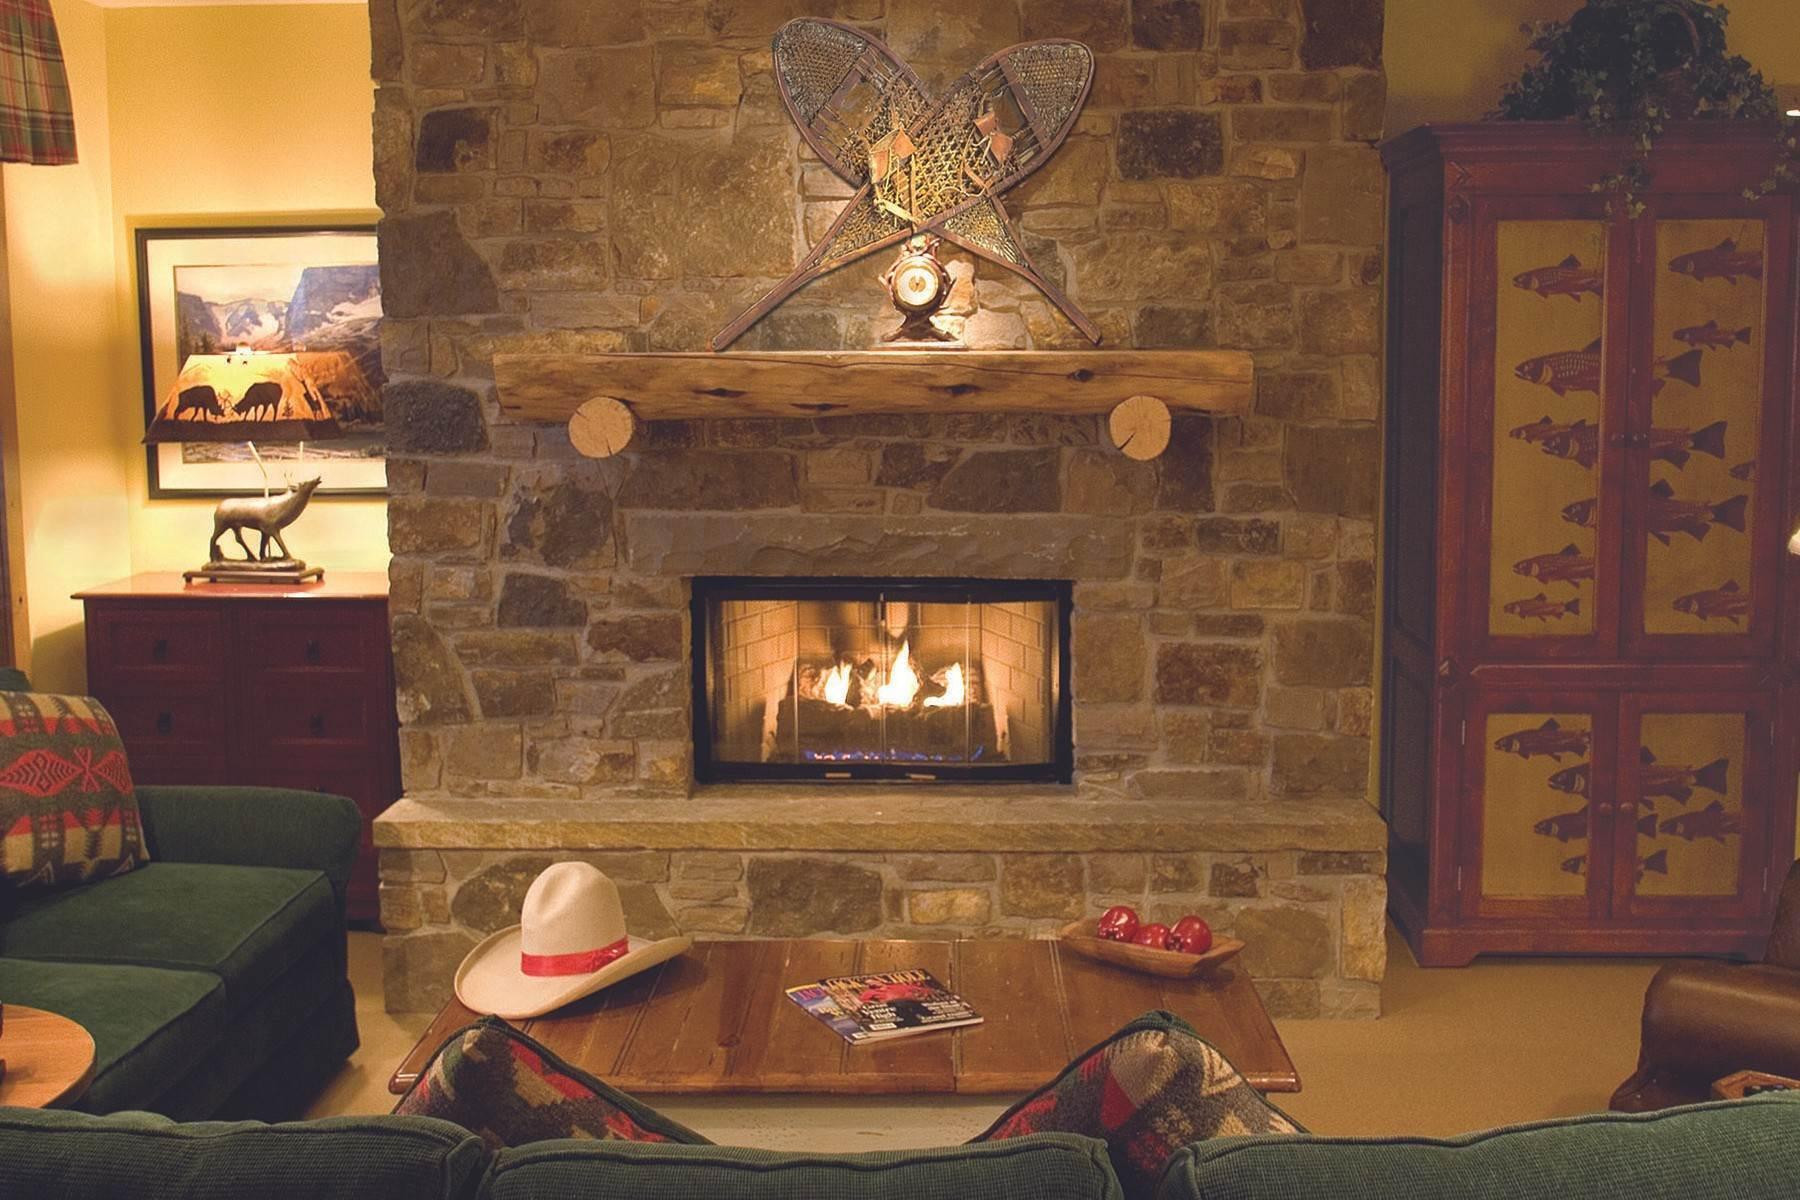 5. fractional ownership prop for Sale at Teton Club - Two Prime Summer Weeks 3340 W Cody Ln, #105 Teton Village, Wyoming 83025 United States